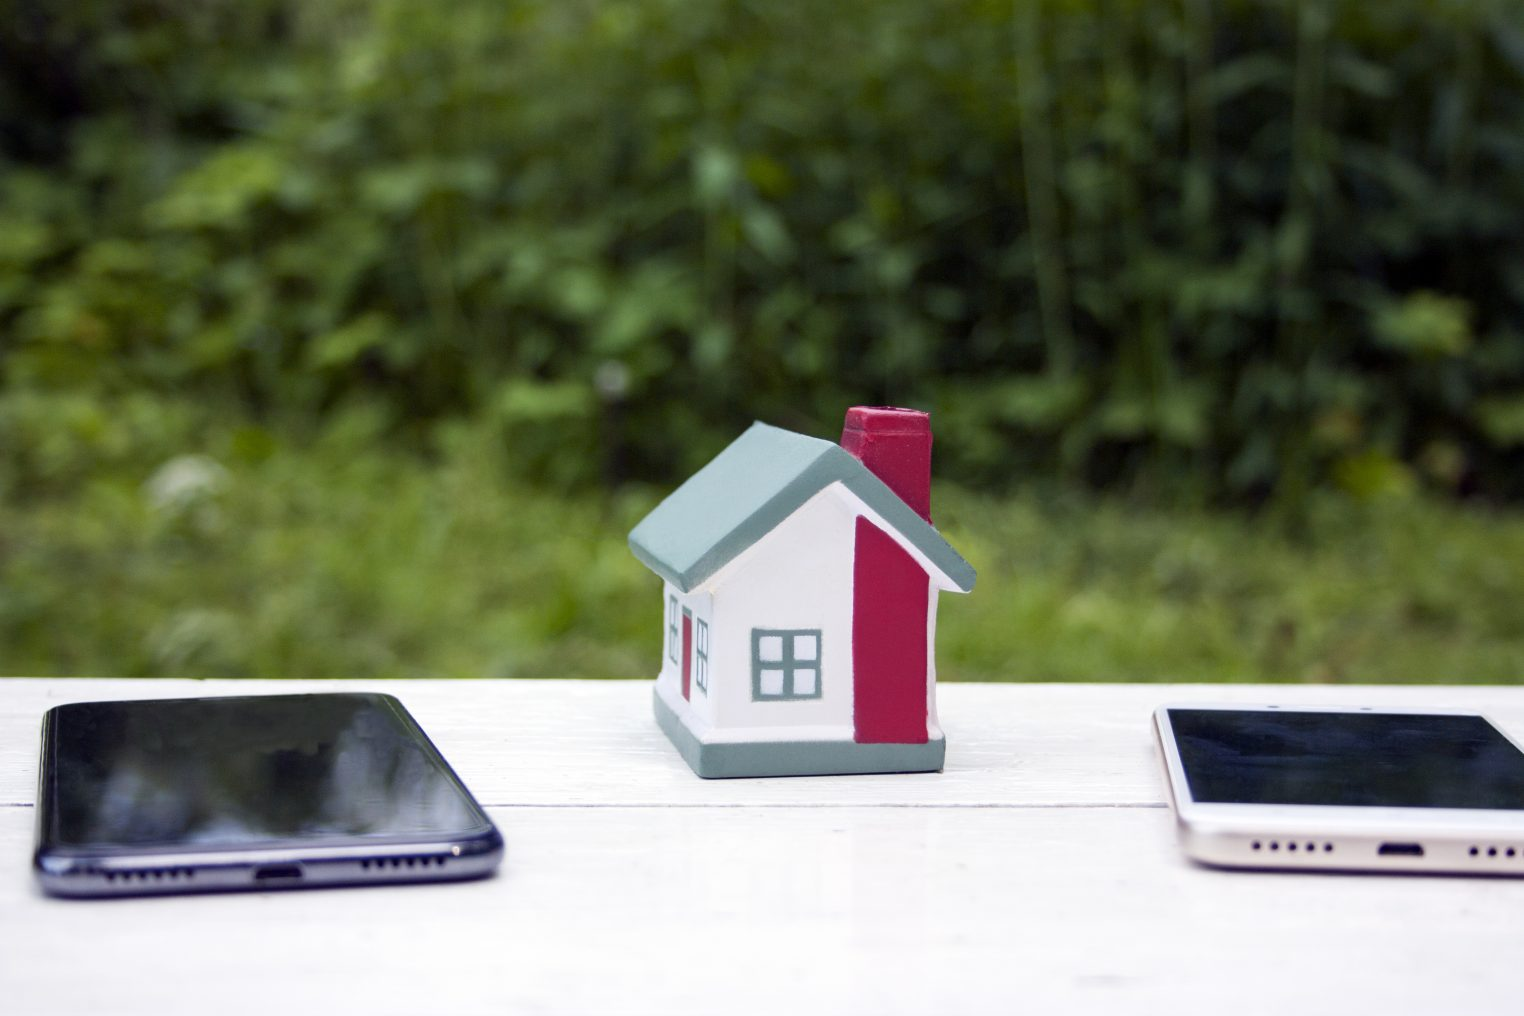 The house stands between two mobile phones - white and black. Conceptual photo. Symbolizes the division of real estate during a divorce. Real estate, investment, mortgage